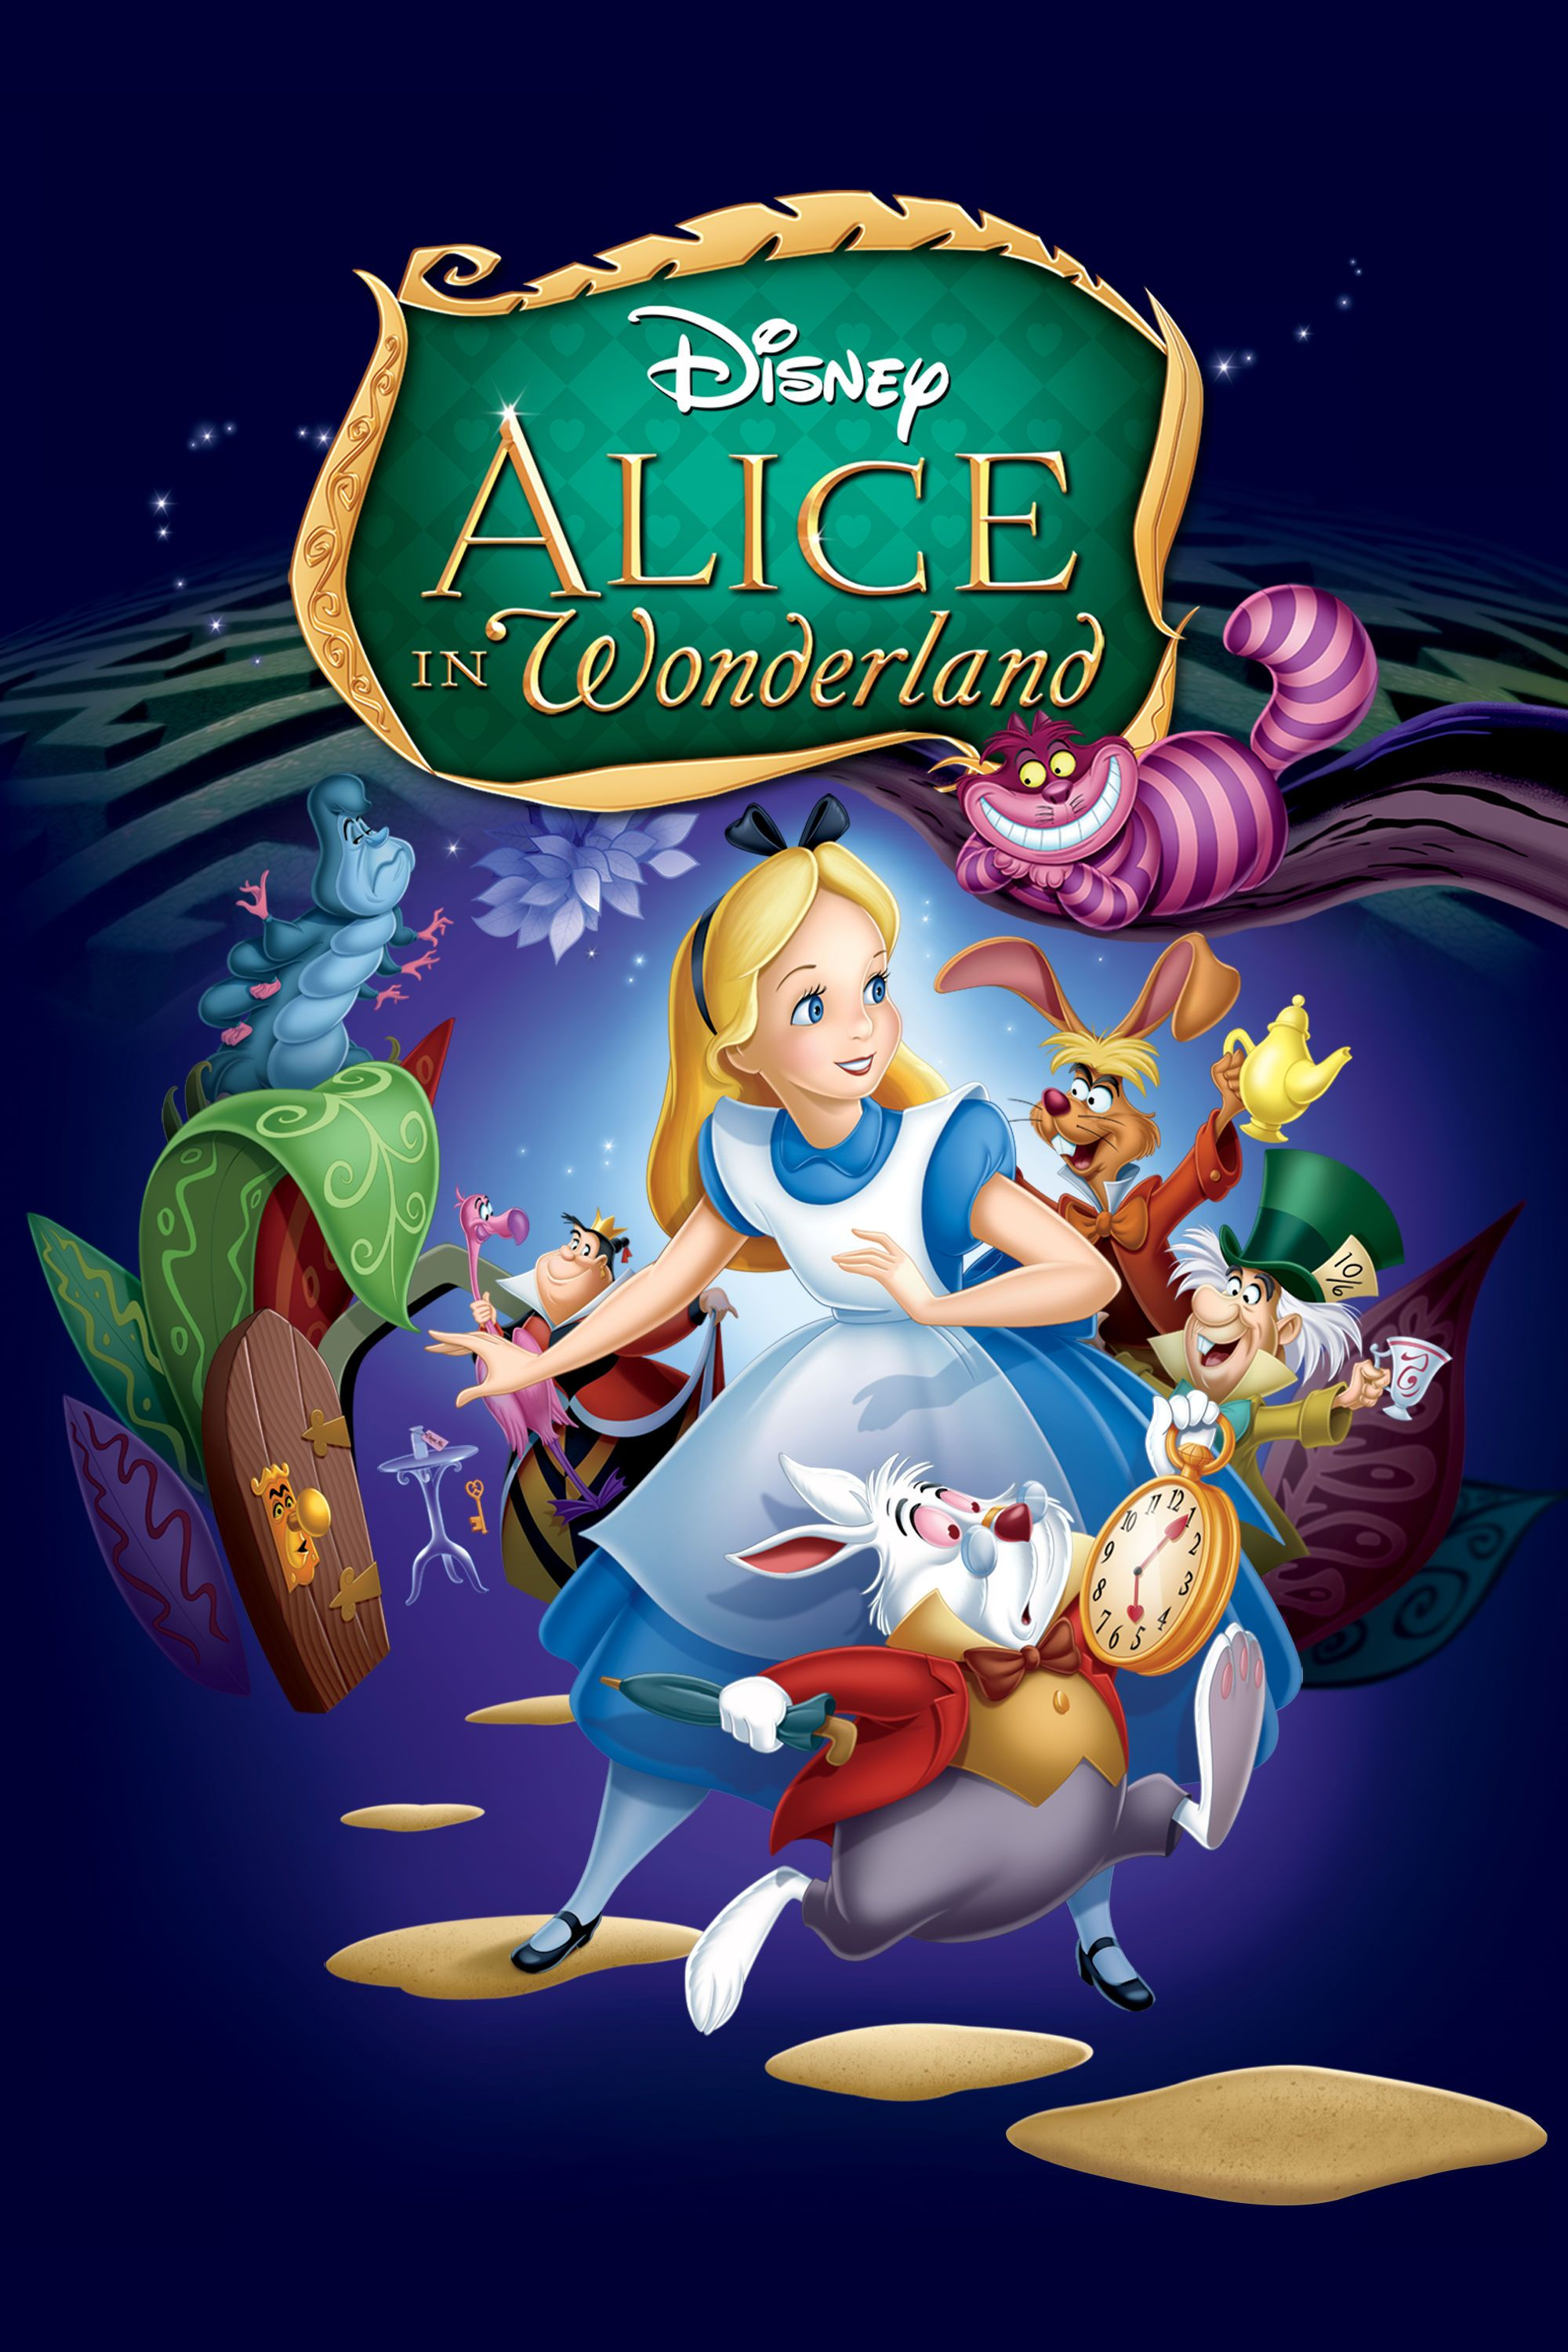 Alice in wonderland disney animation animation film 60th anniversary disney movie posters